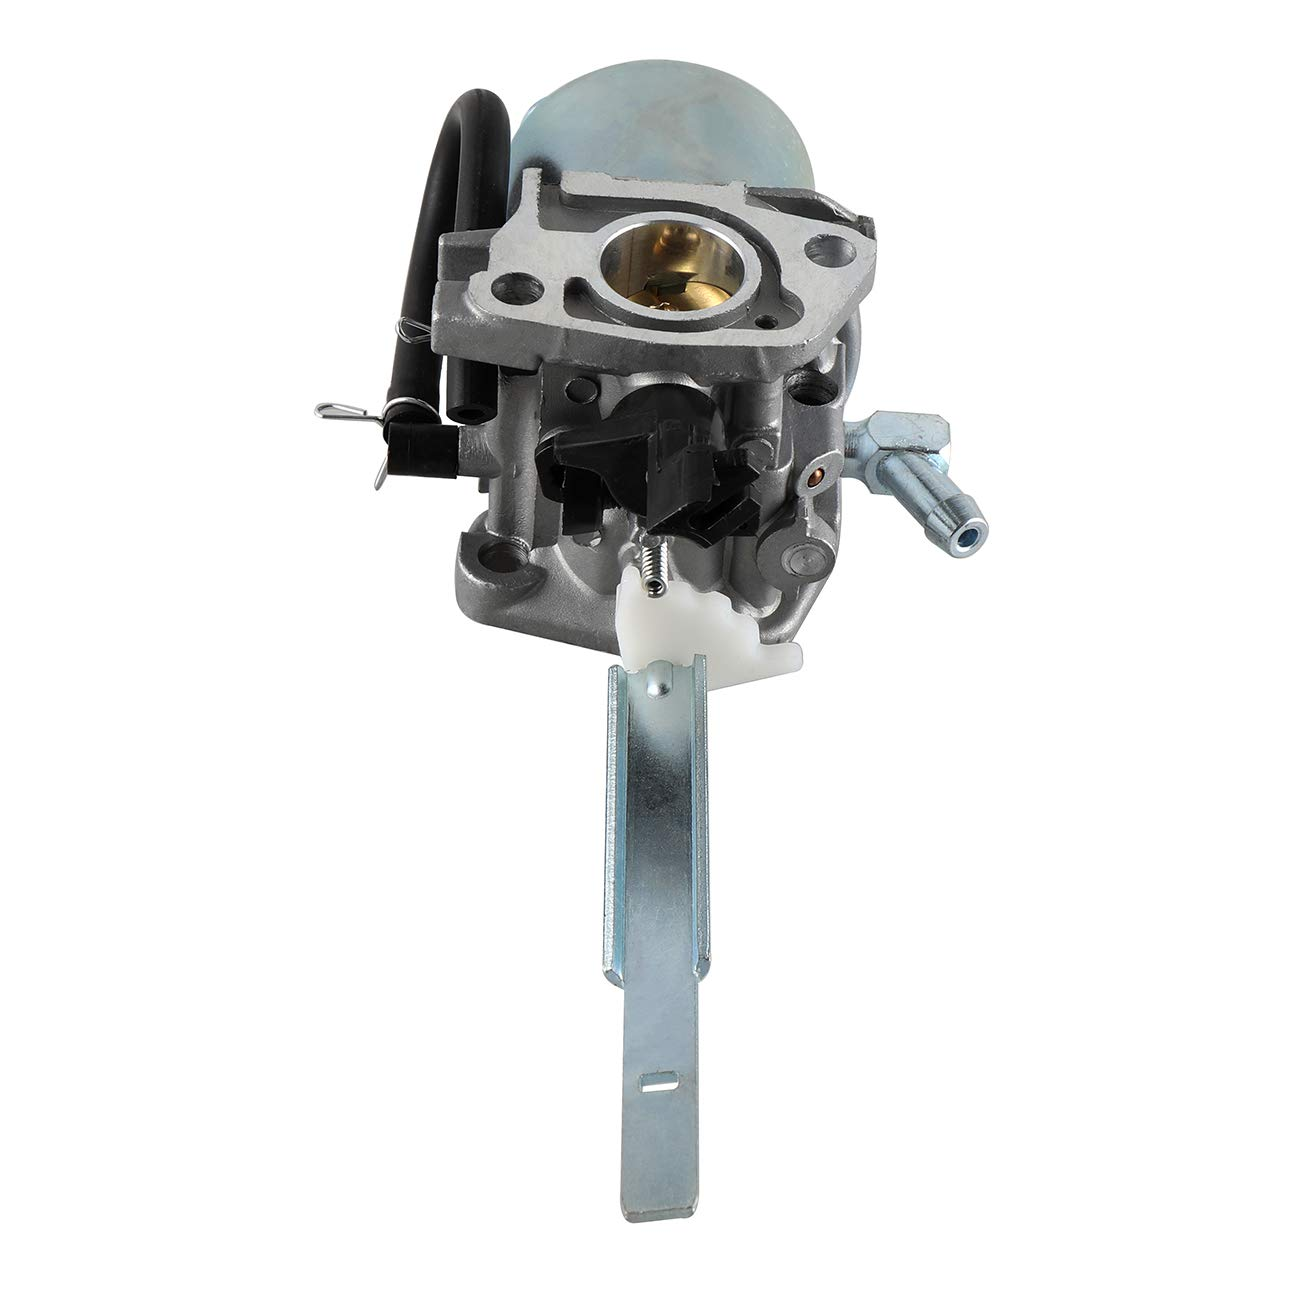 Supermotorparts Carburetor for Ariens 20001086 20001369 LCT 13141 with LCT 136cc snow engine New